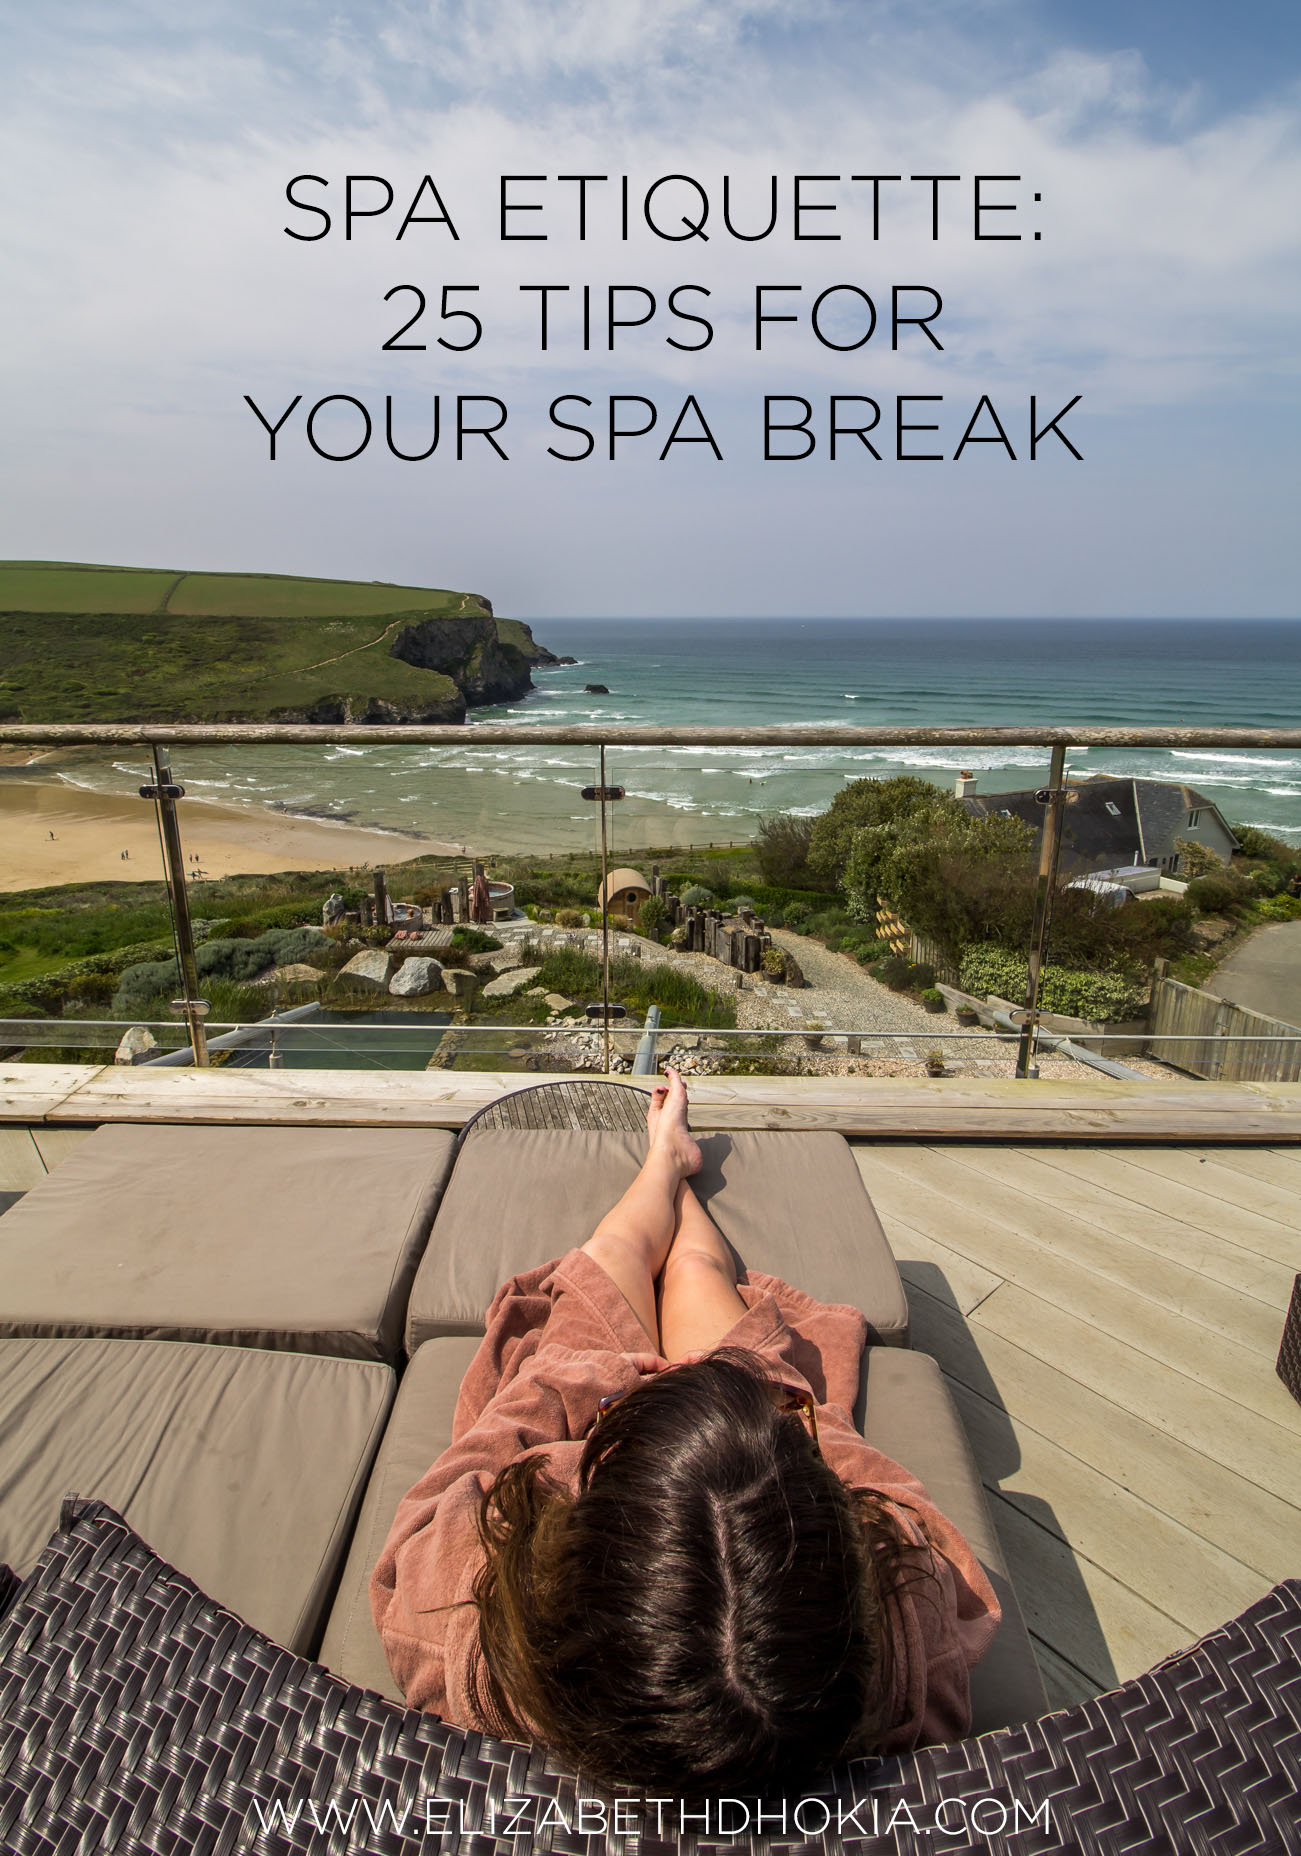 25 tips on spa etiquette